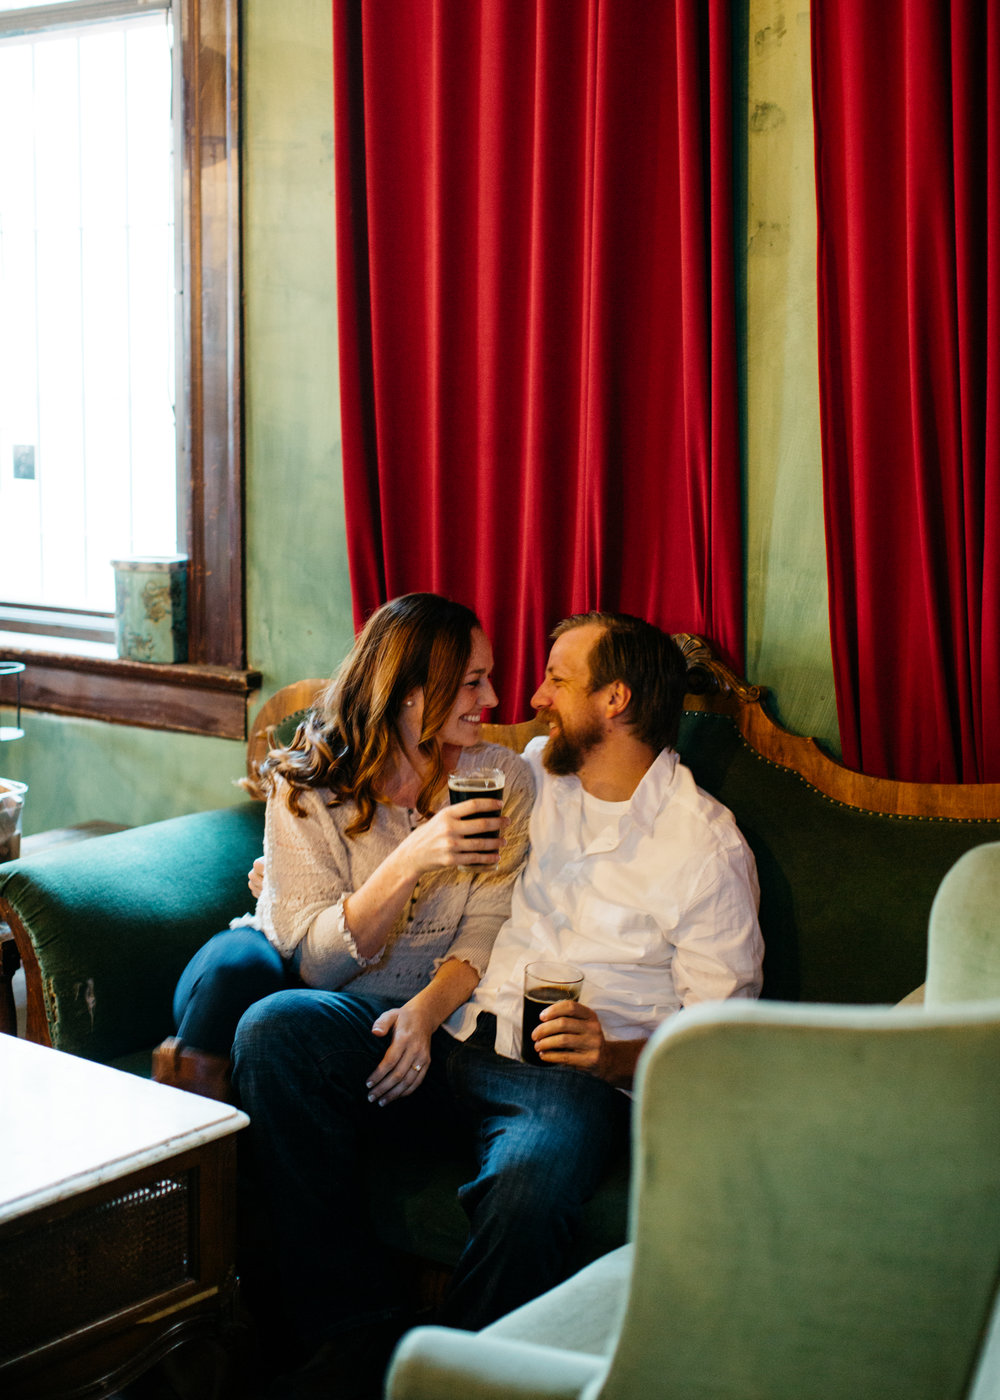 colorado-springs-engagement-photographer-102.jpg